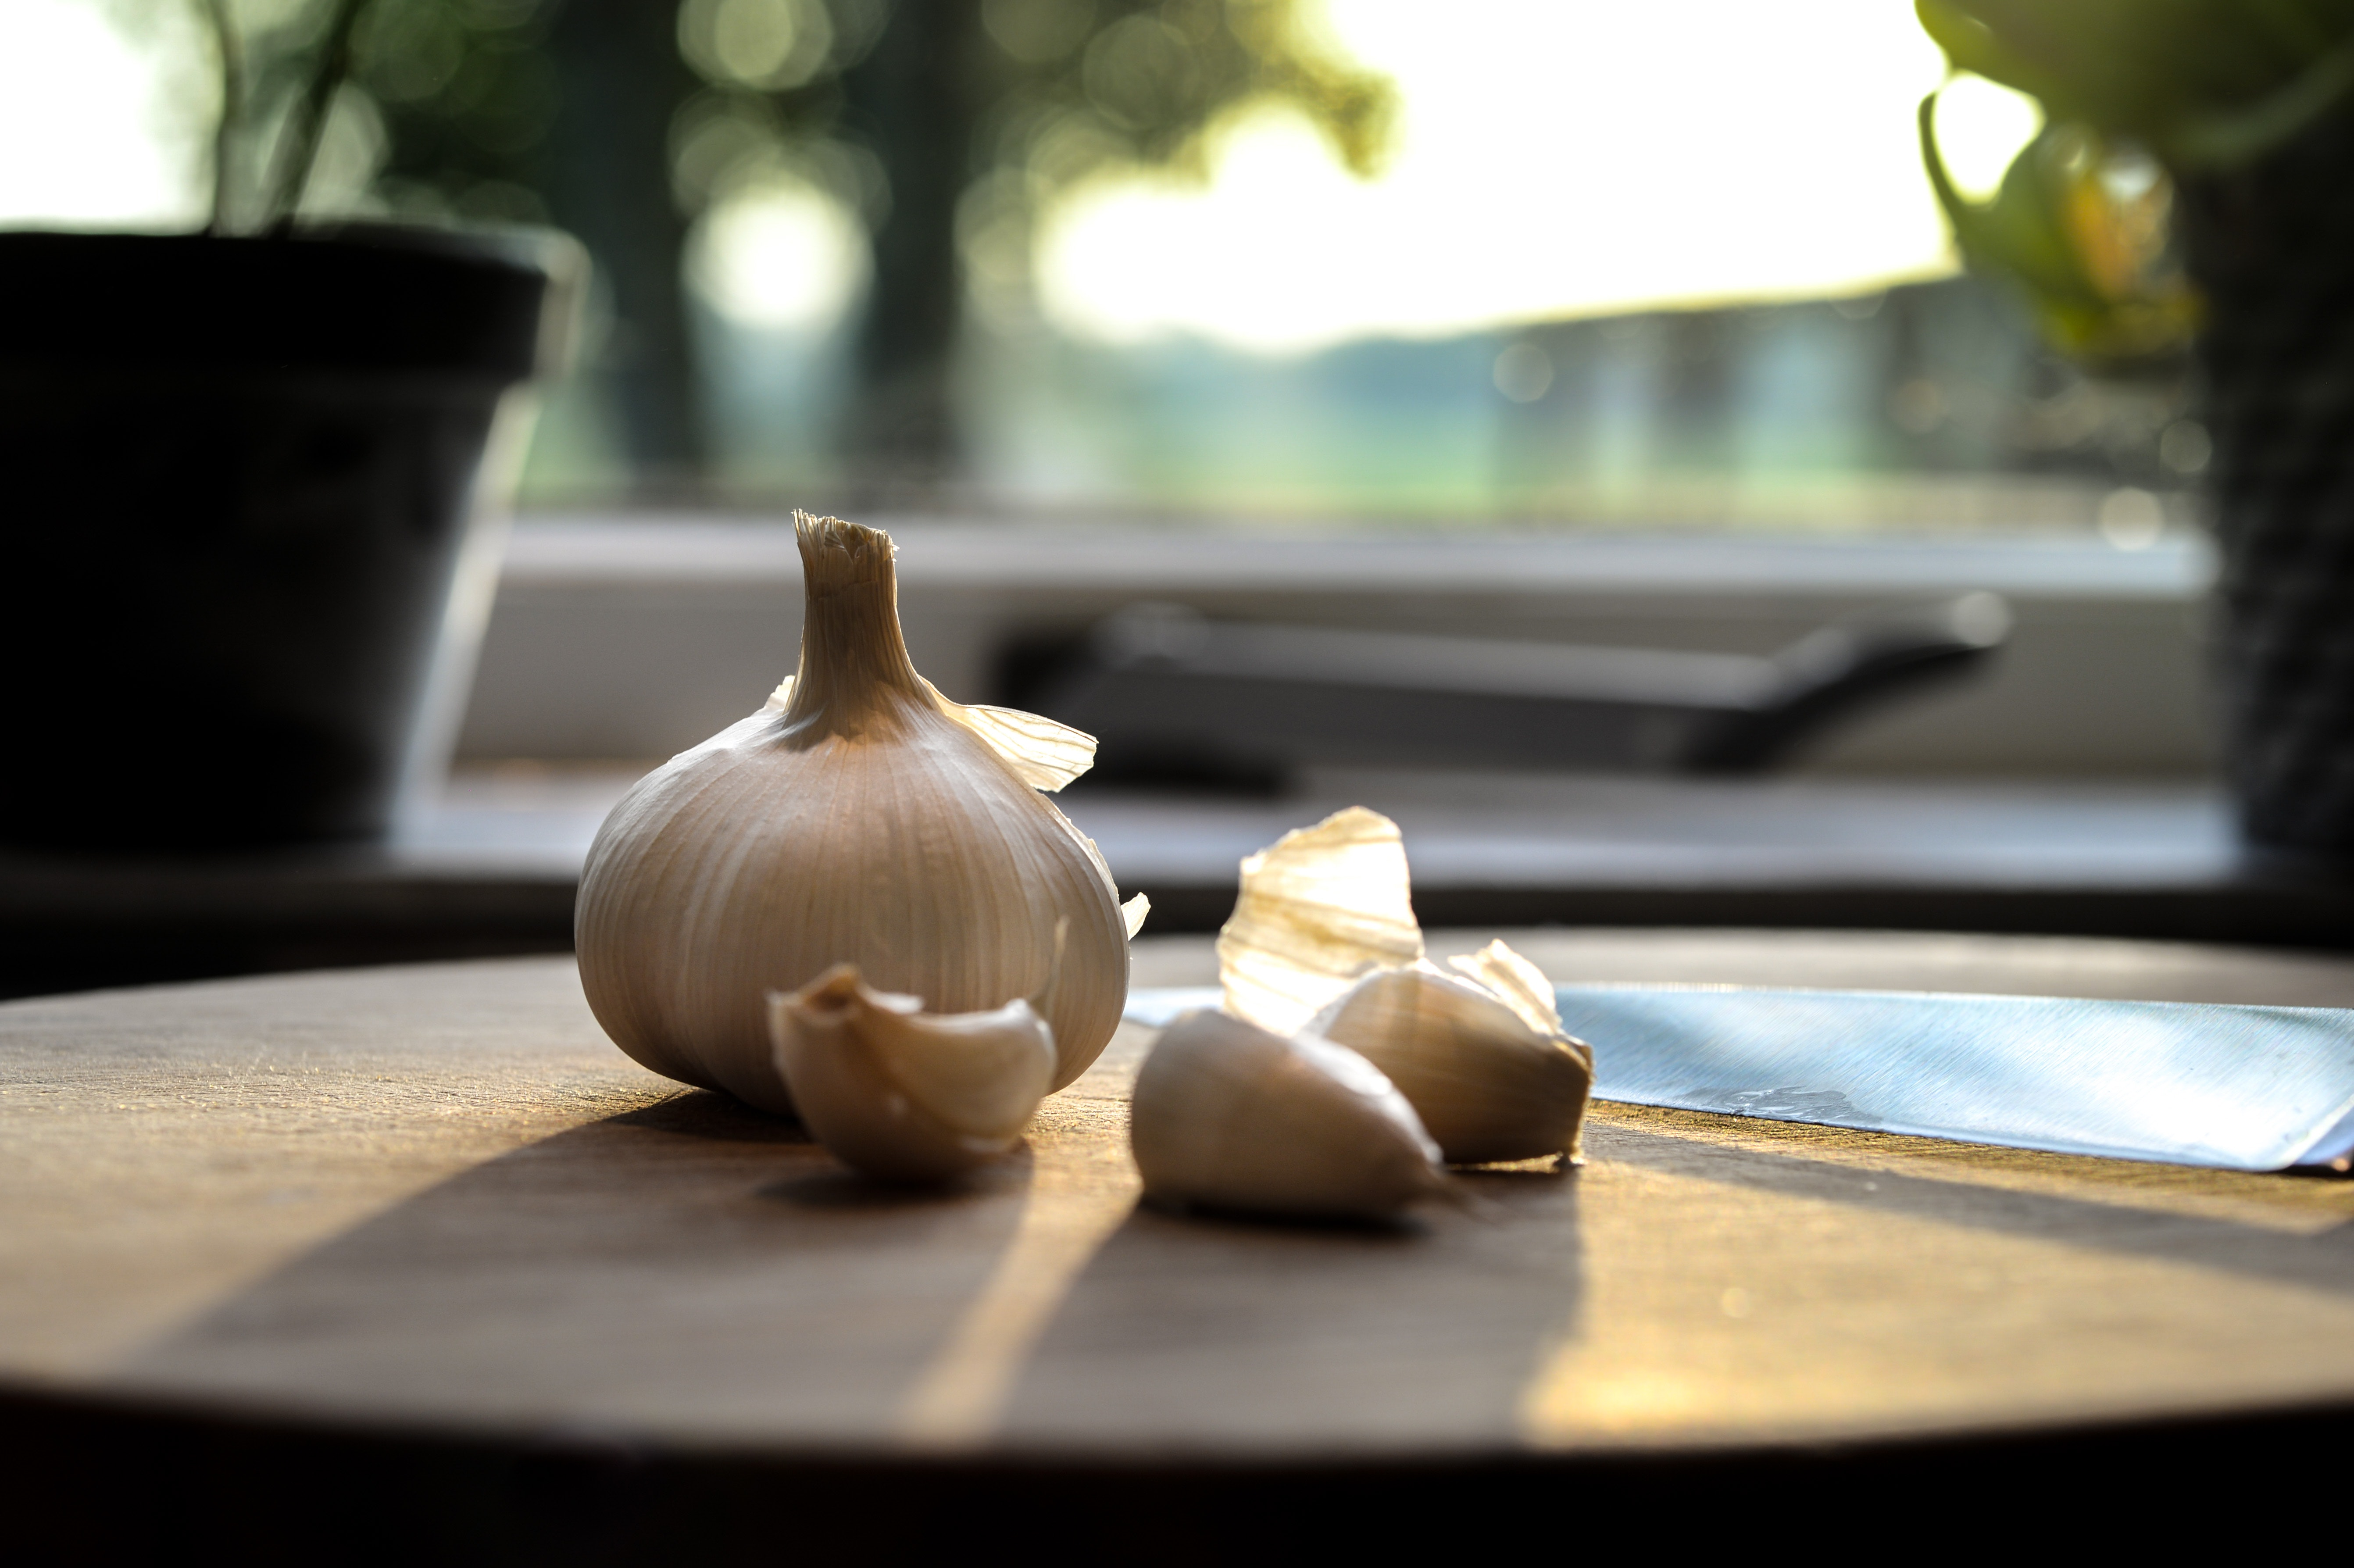 photography-of-garlic-on-wooden-table-630766